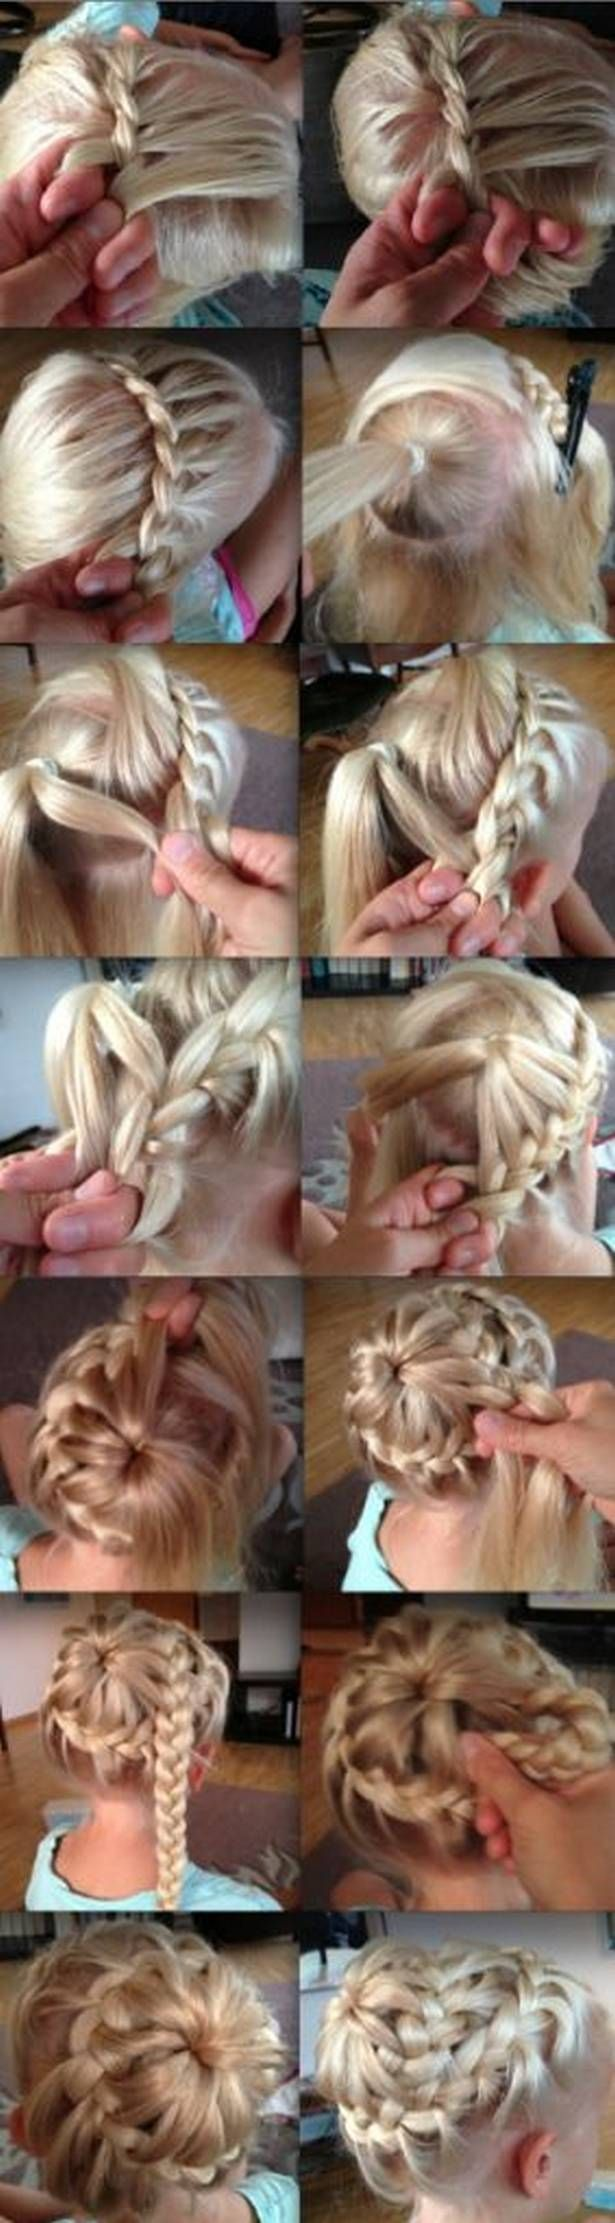 7 hairstyles for dirty hair. And I'm not coordinated enough to pull off one of…